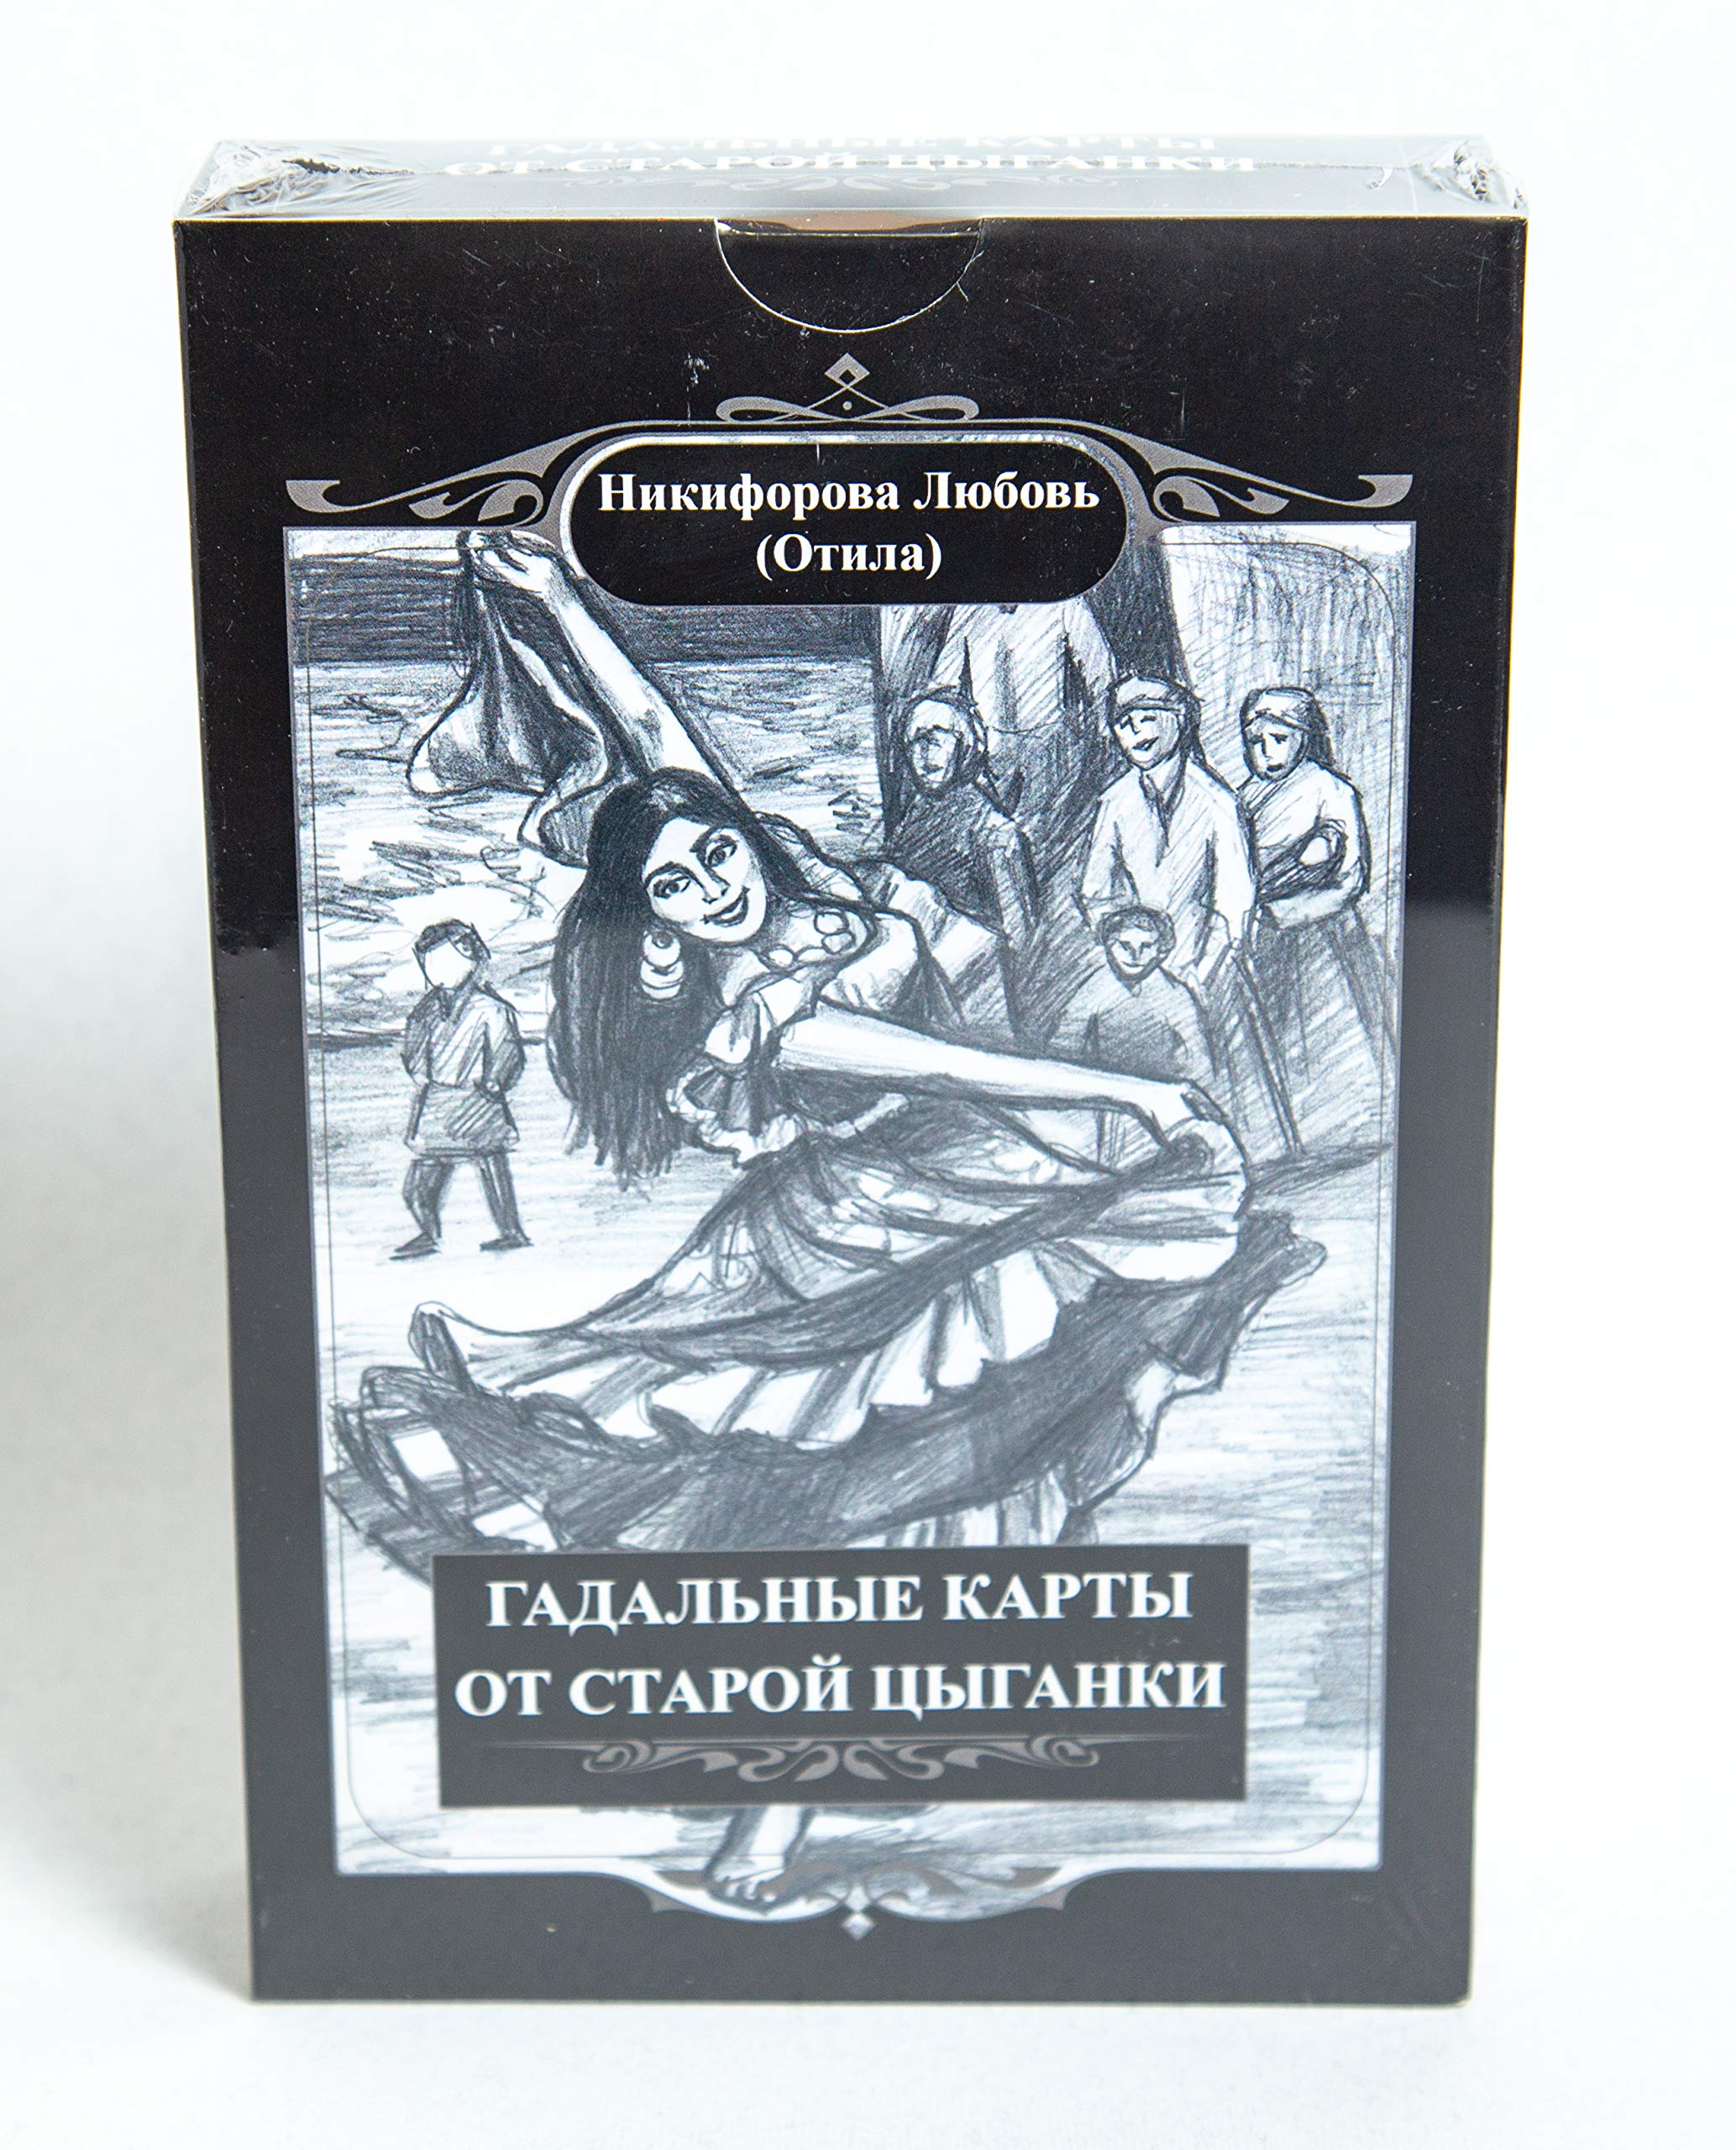 TBLCL MNT GRN 2 36 Otila Nikiforova Fortunetelling Cards of The Old Gypsy Romany Tzigane Tarot Card Deck